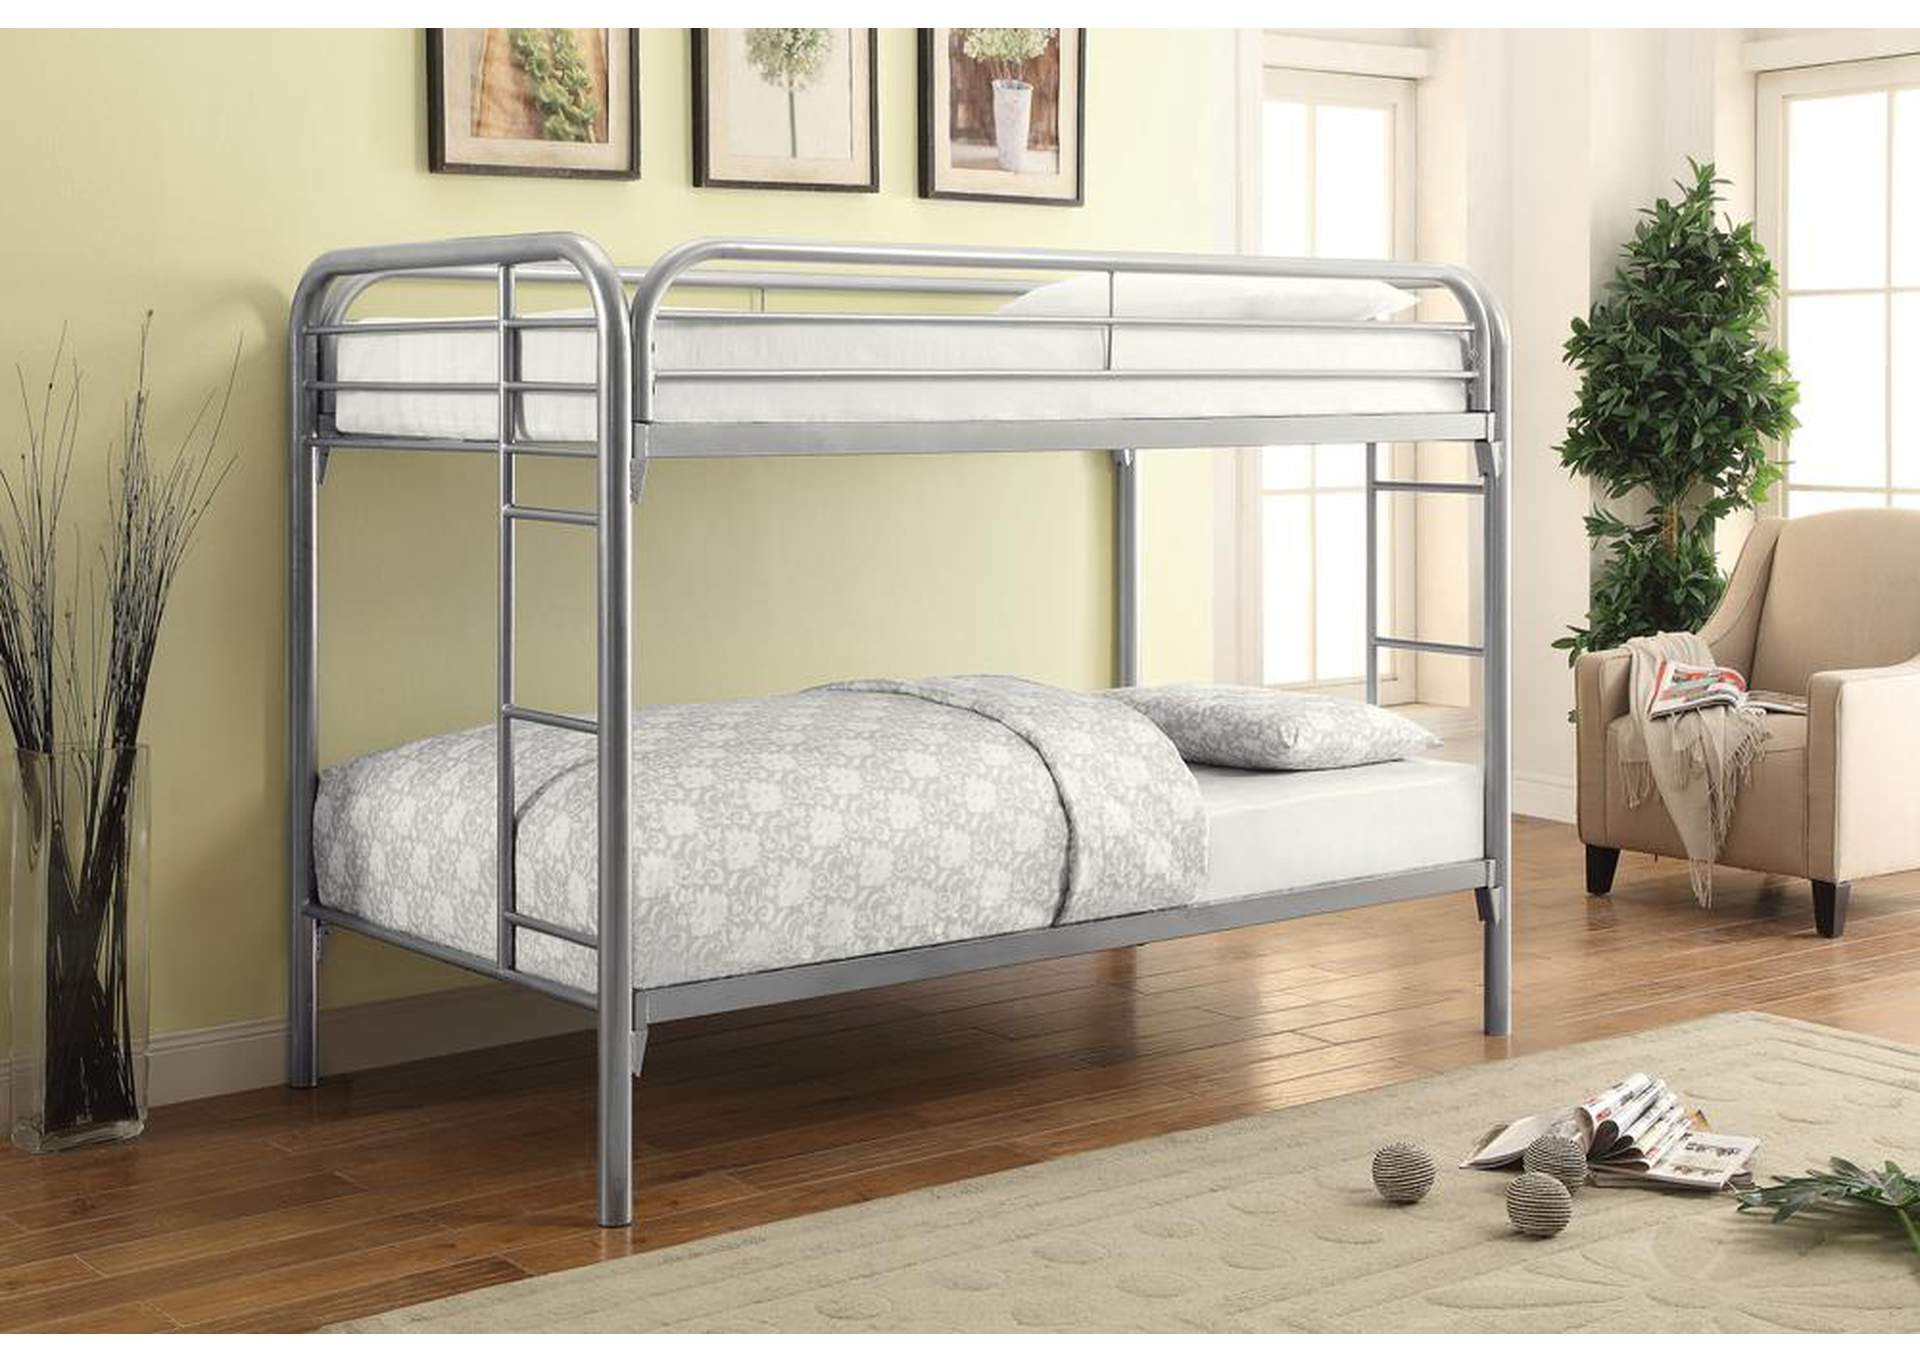 Silver Twin/Twin Metal Bunk Bed,Coaster Furniture